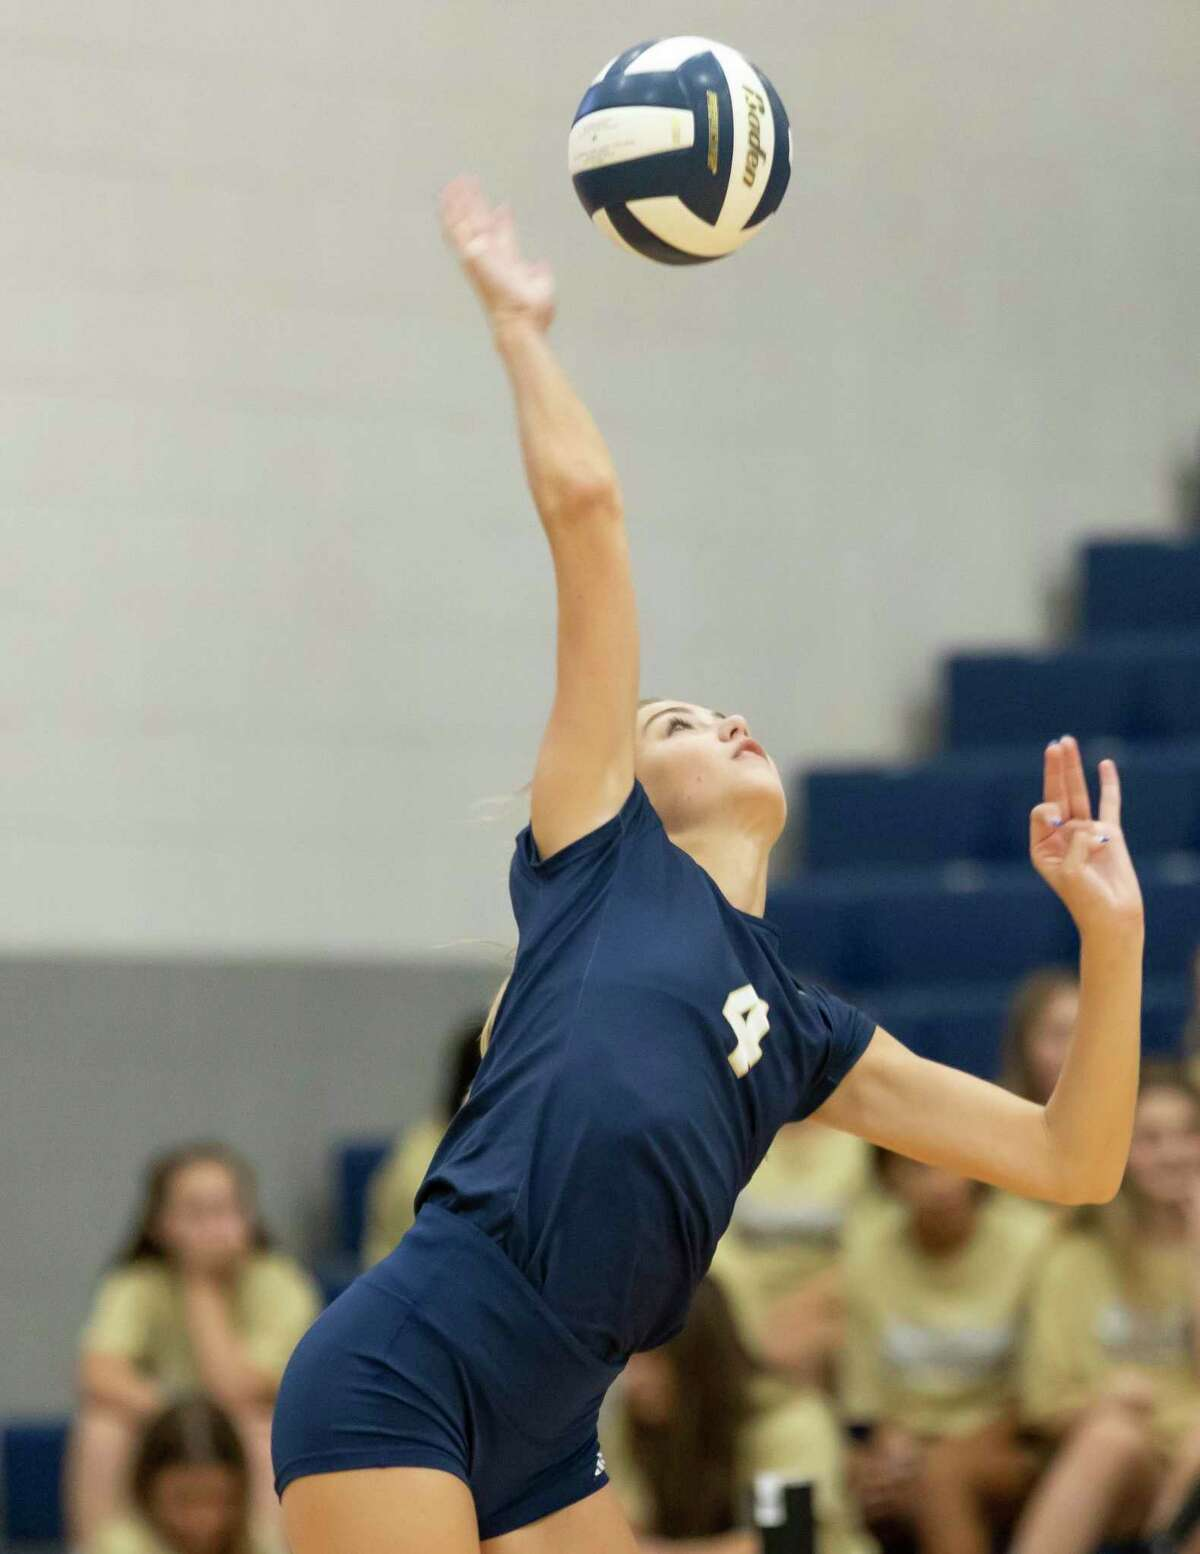 Payton Woods of Lake Creek (4) serves the ball during the first set of a District 20-5A match against Cleveland at Lake Creek High School, Tuesday, Sept. 28, 2021, in Montgomery.